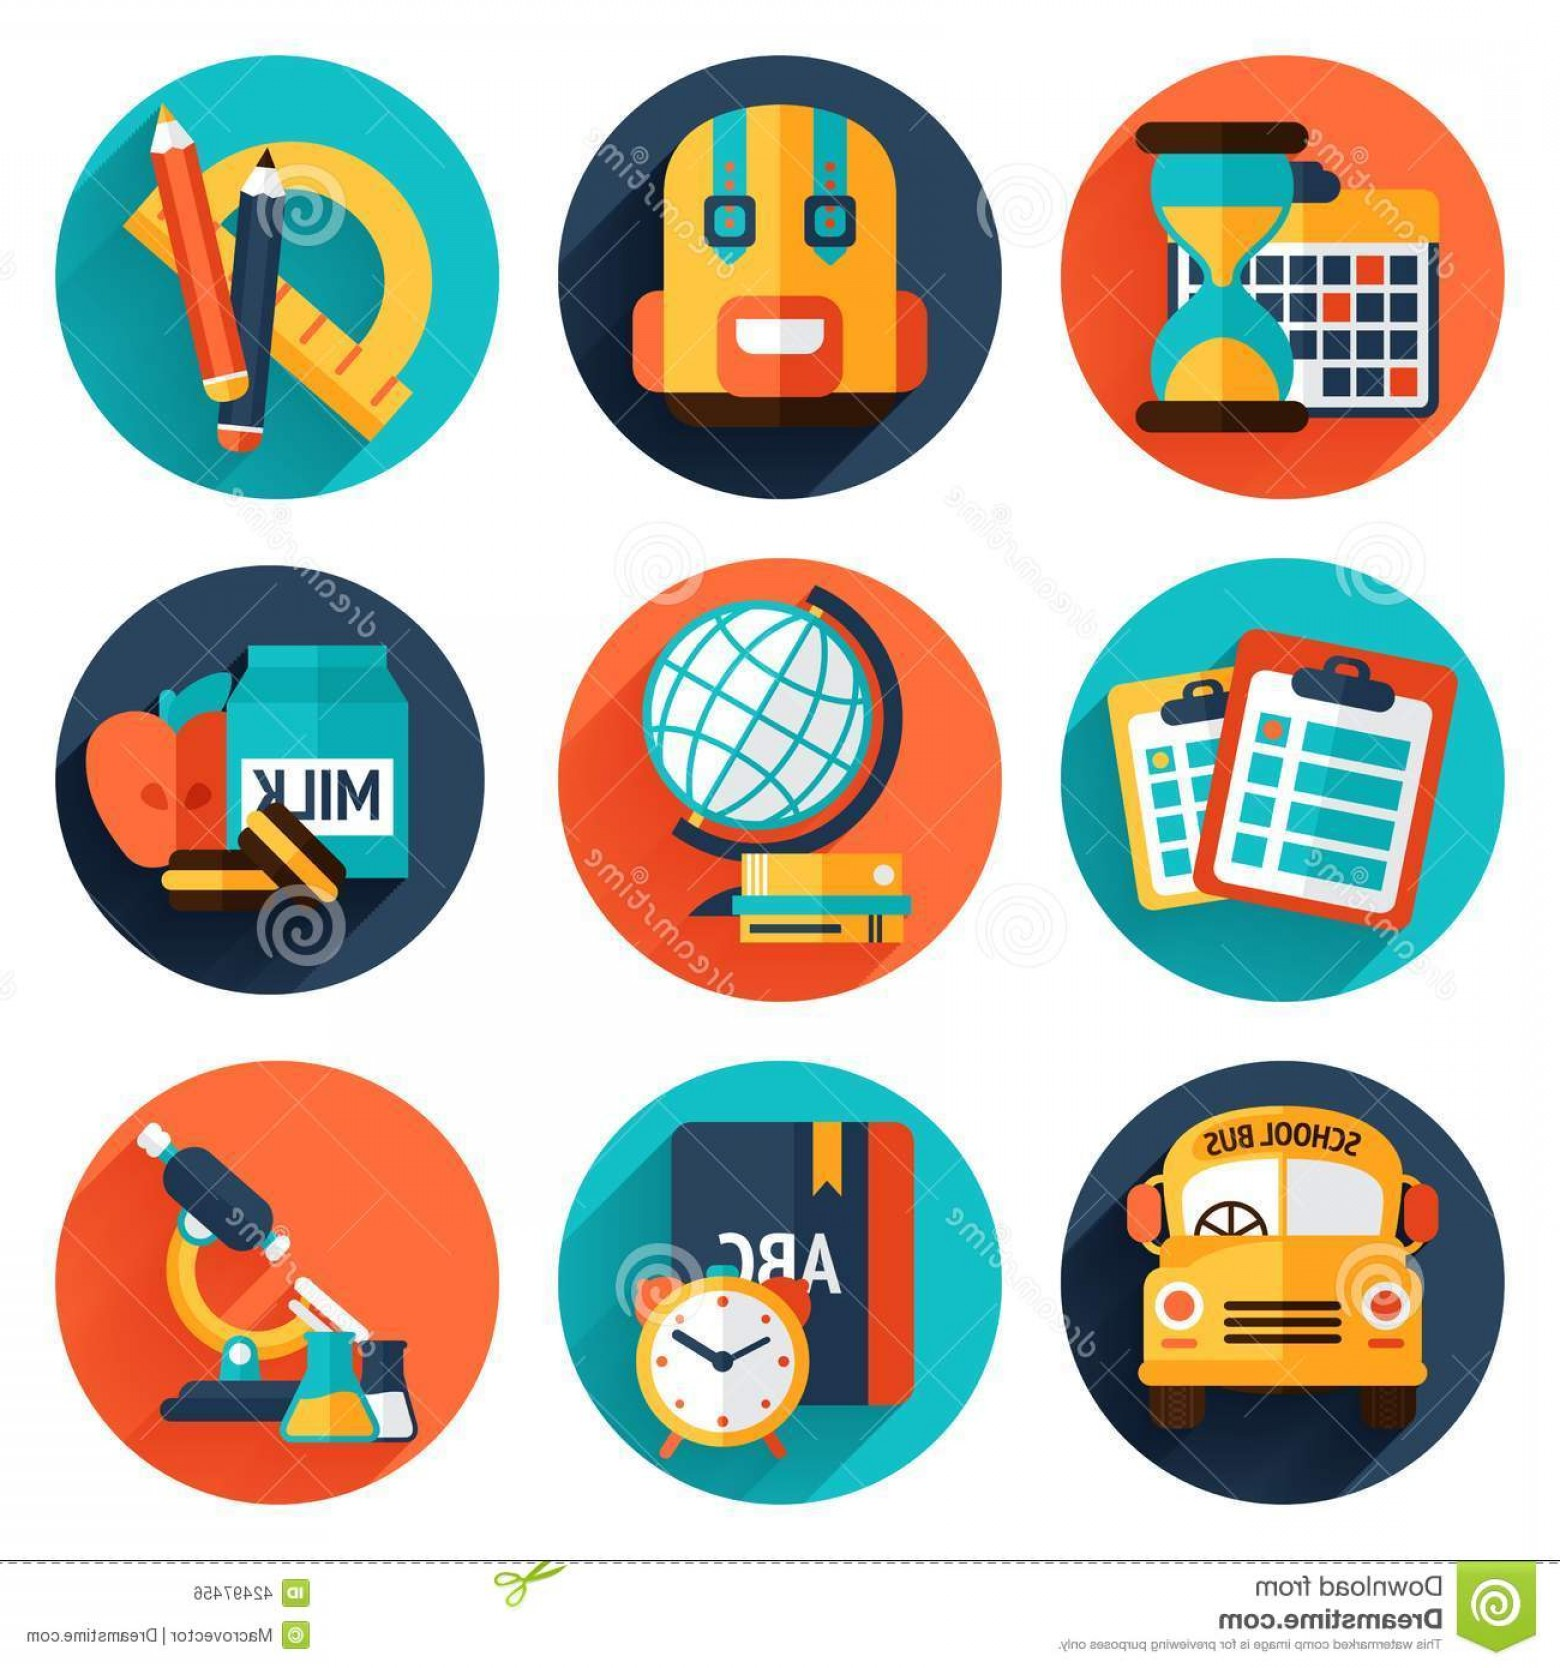 Free Vector Flat Education Icons: Stock Illustration Education Flat Icons Set Knowledge Science College School Supplies Isolated Vector Illustration Image